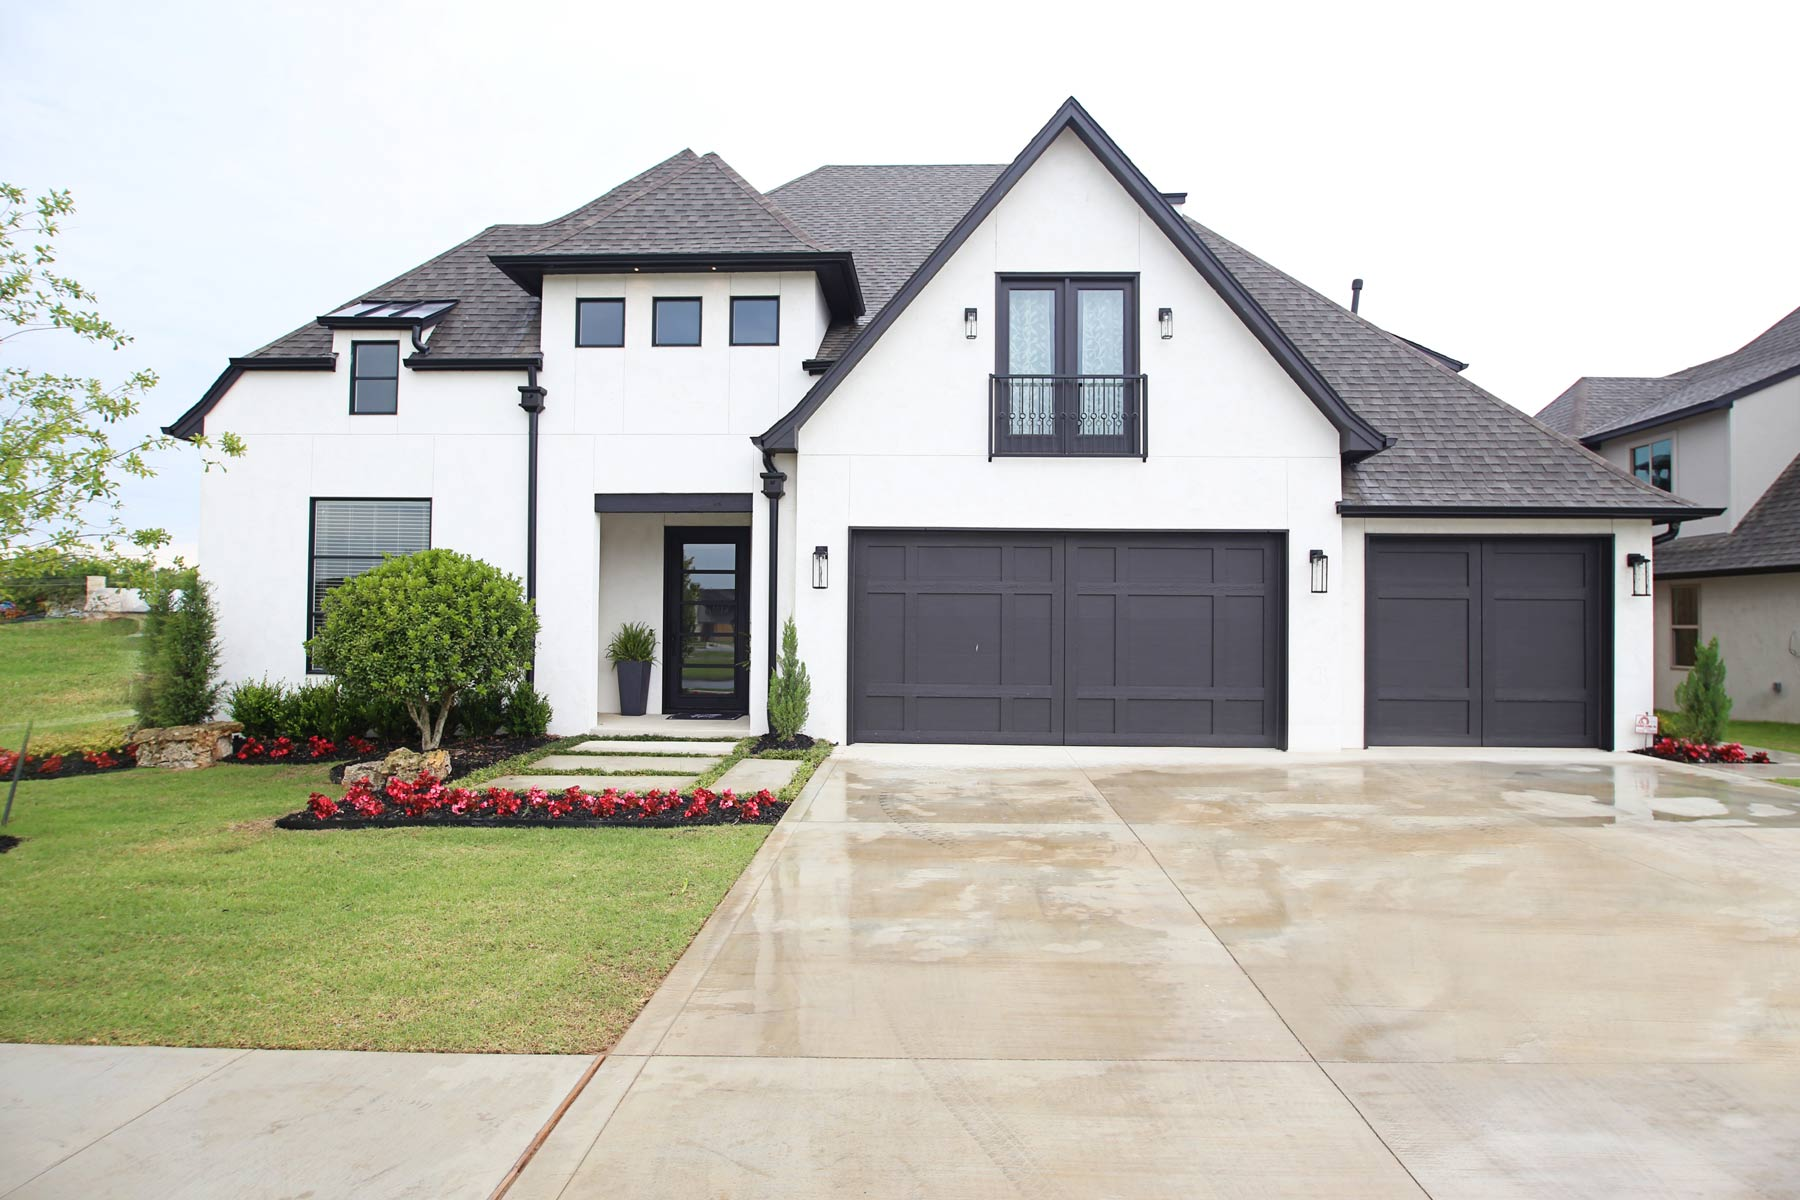 parade home southern homes award winning tulsa custom home builder yet reflecting today s style and trends our 2017 parade of homes model features shiplap walls exposed beams a farmhouse sink and an open floor plan